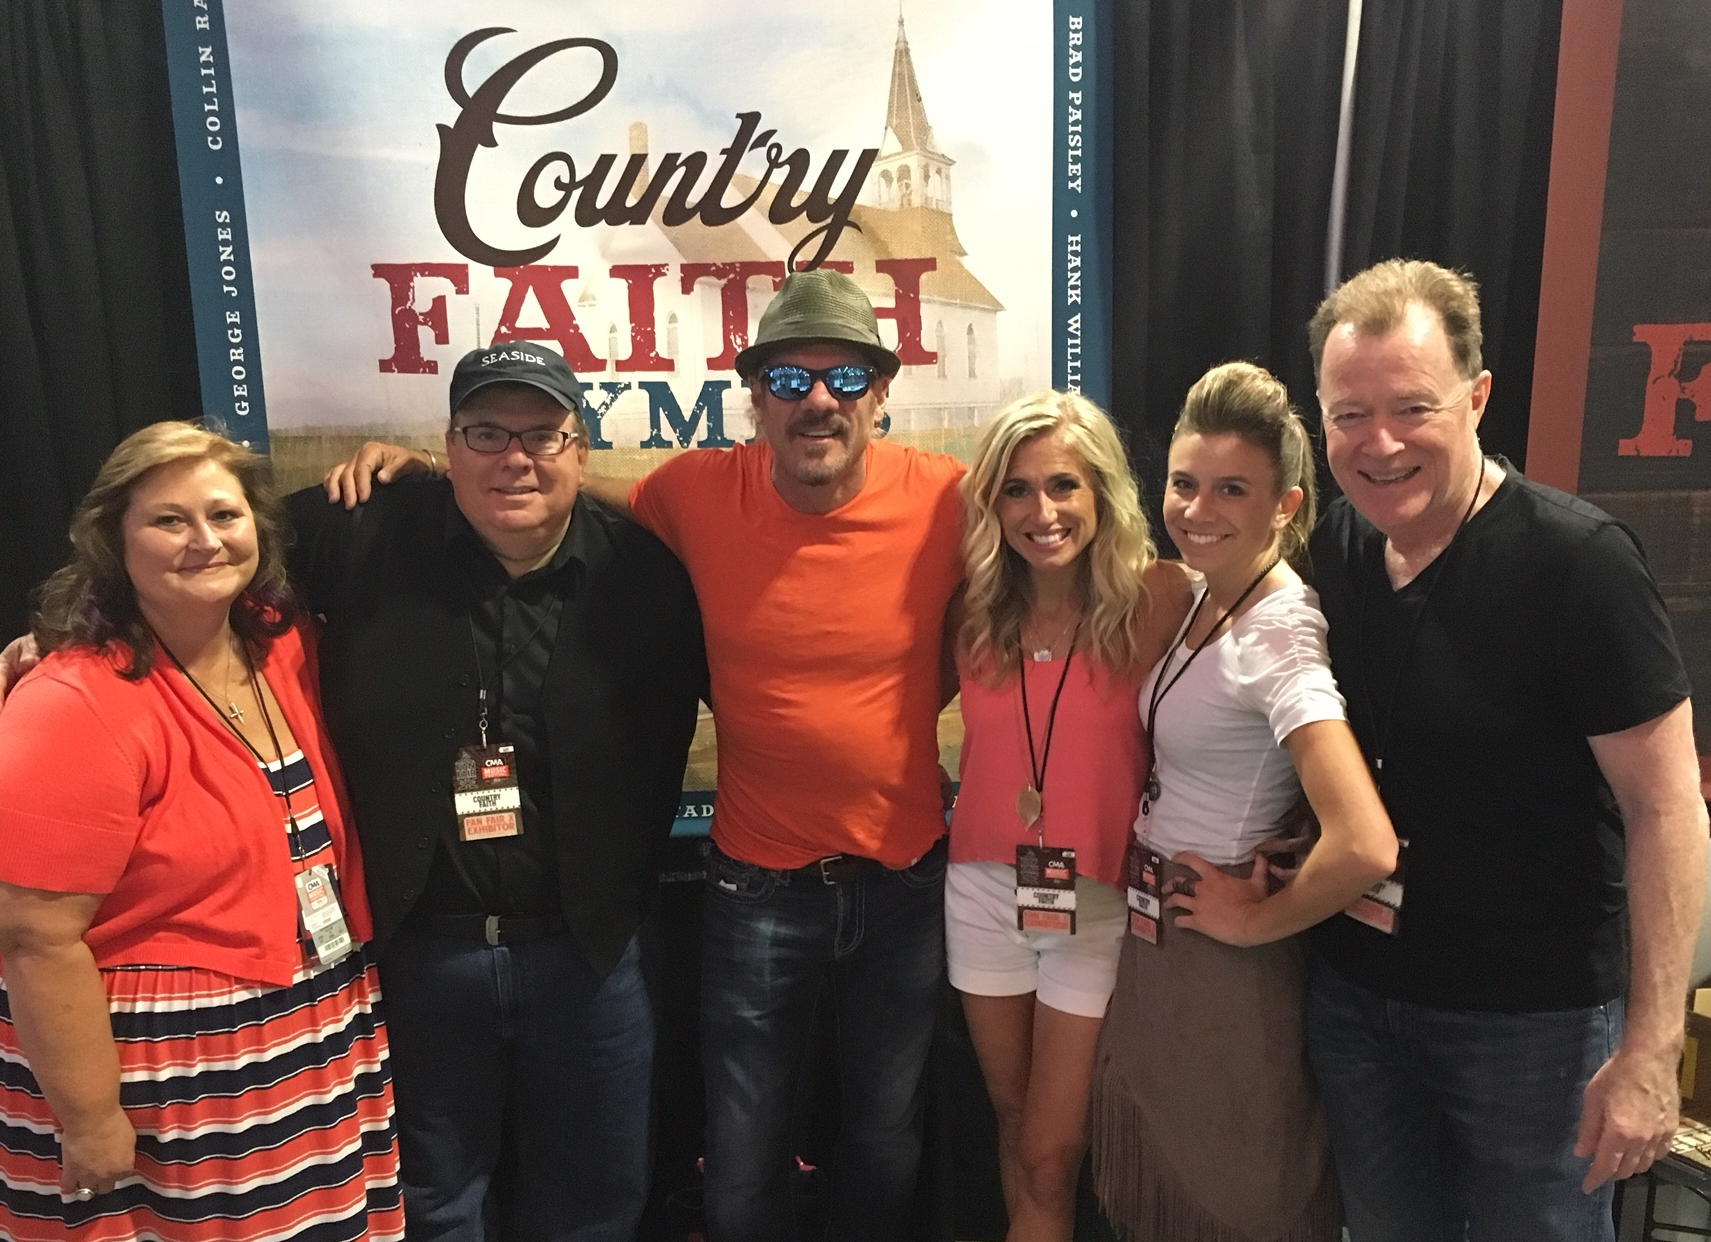 Country Faith partners at CMA Fest hanging out with Phil Vassar and friends. Left to Right: Deborah Evans Price, Bob DeMoss, Phil Vassar, Michelle Smith, Molly Cronin, Danny McGuffey.